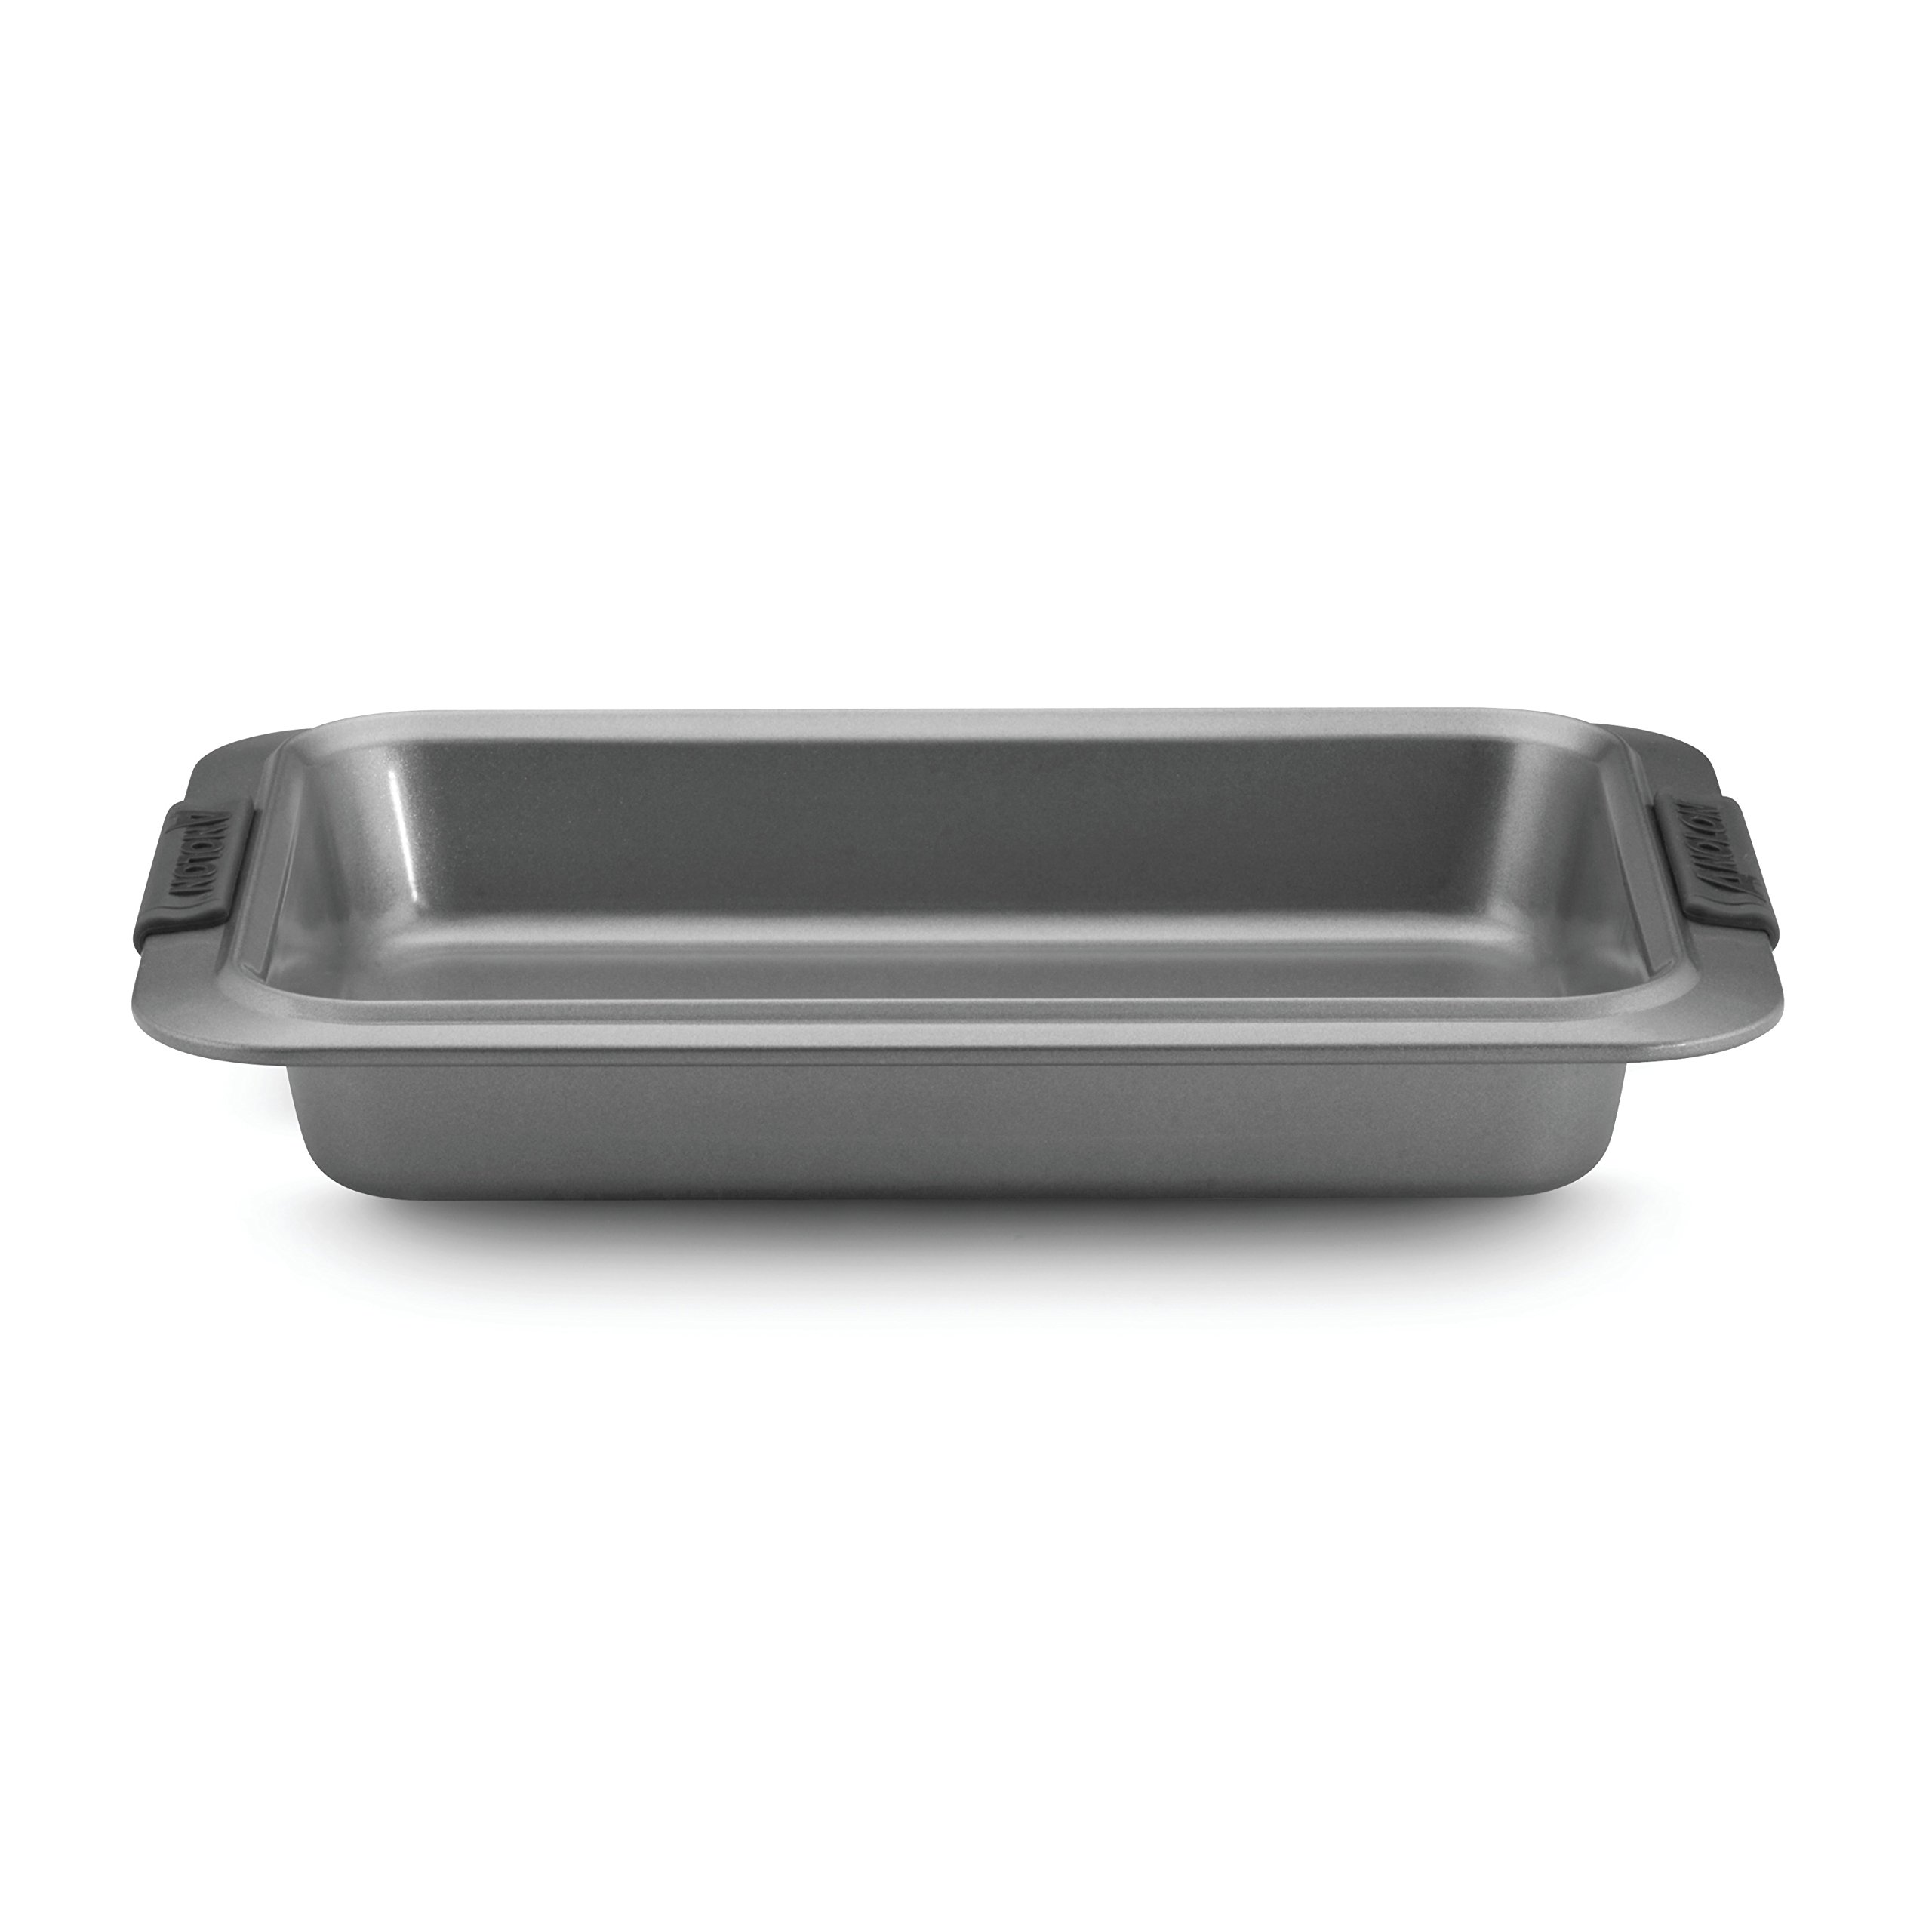 Anolon Advanced Nonstick Bakeware 9-Inch x 13-Inch Rectangular Cake Pan, Gray with Silicone Grips